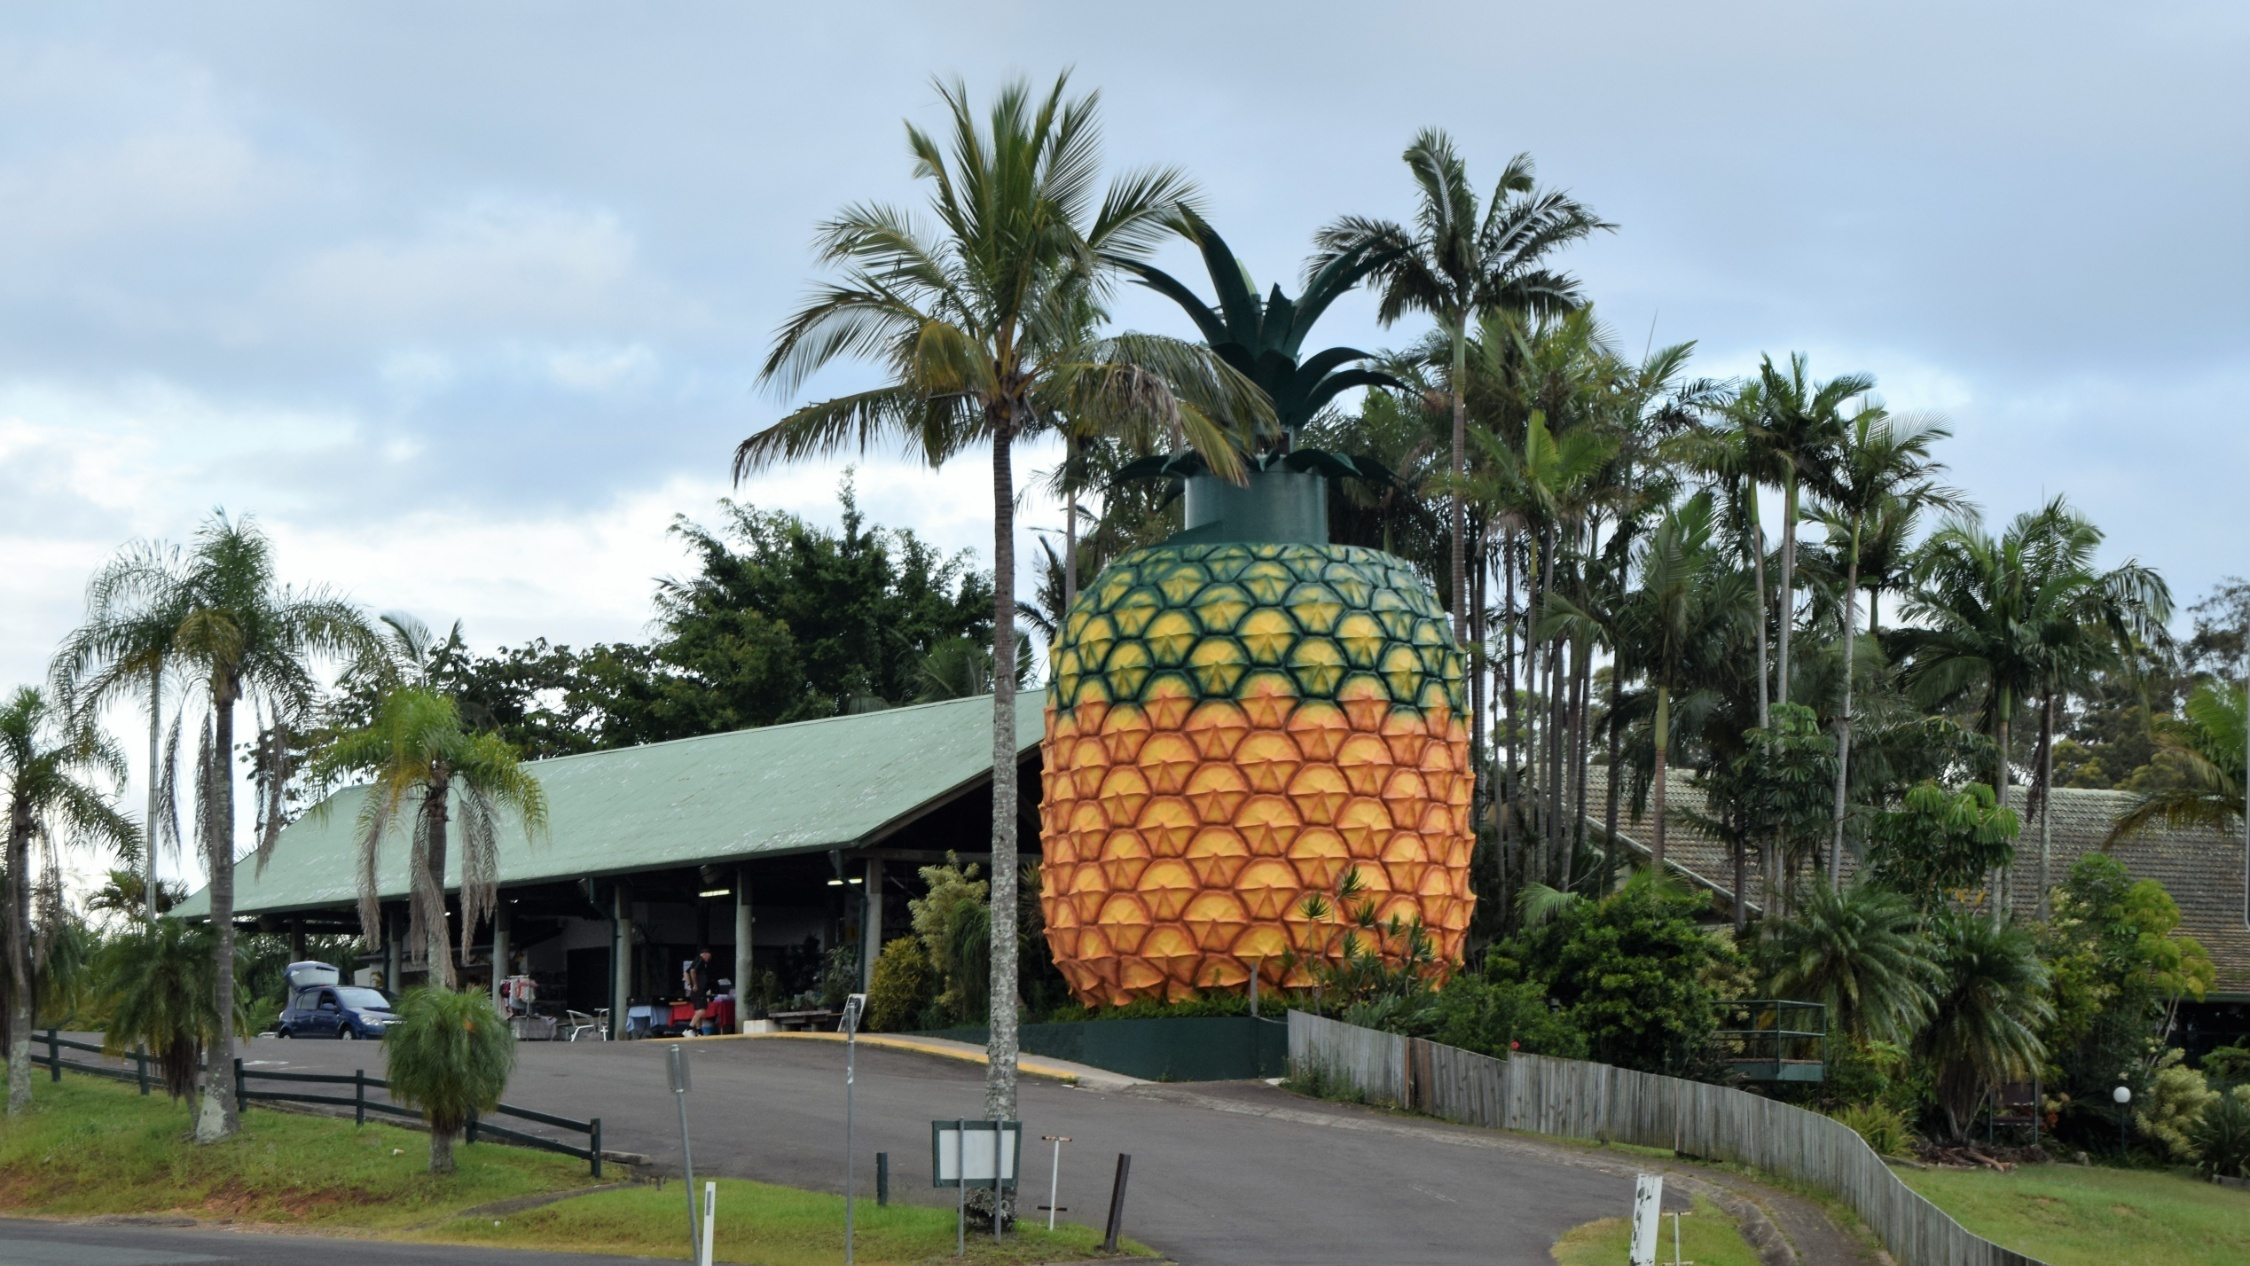 The big pineapple surrounded by palm trees